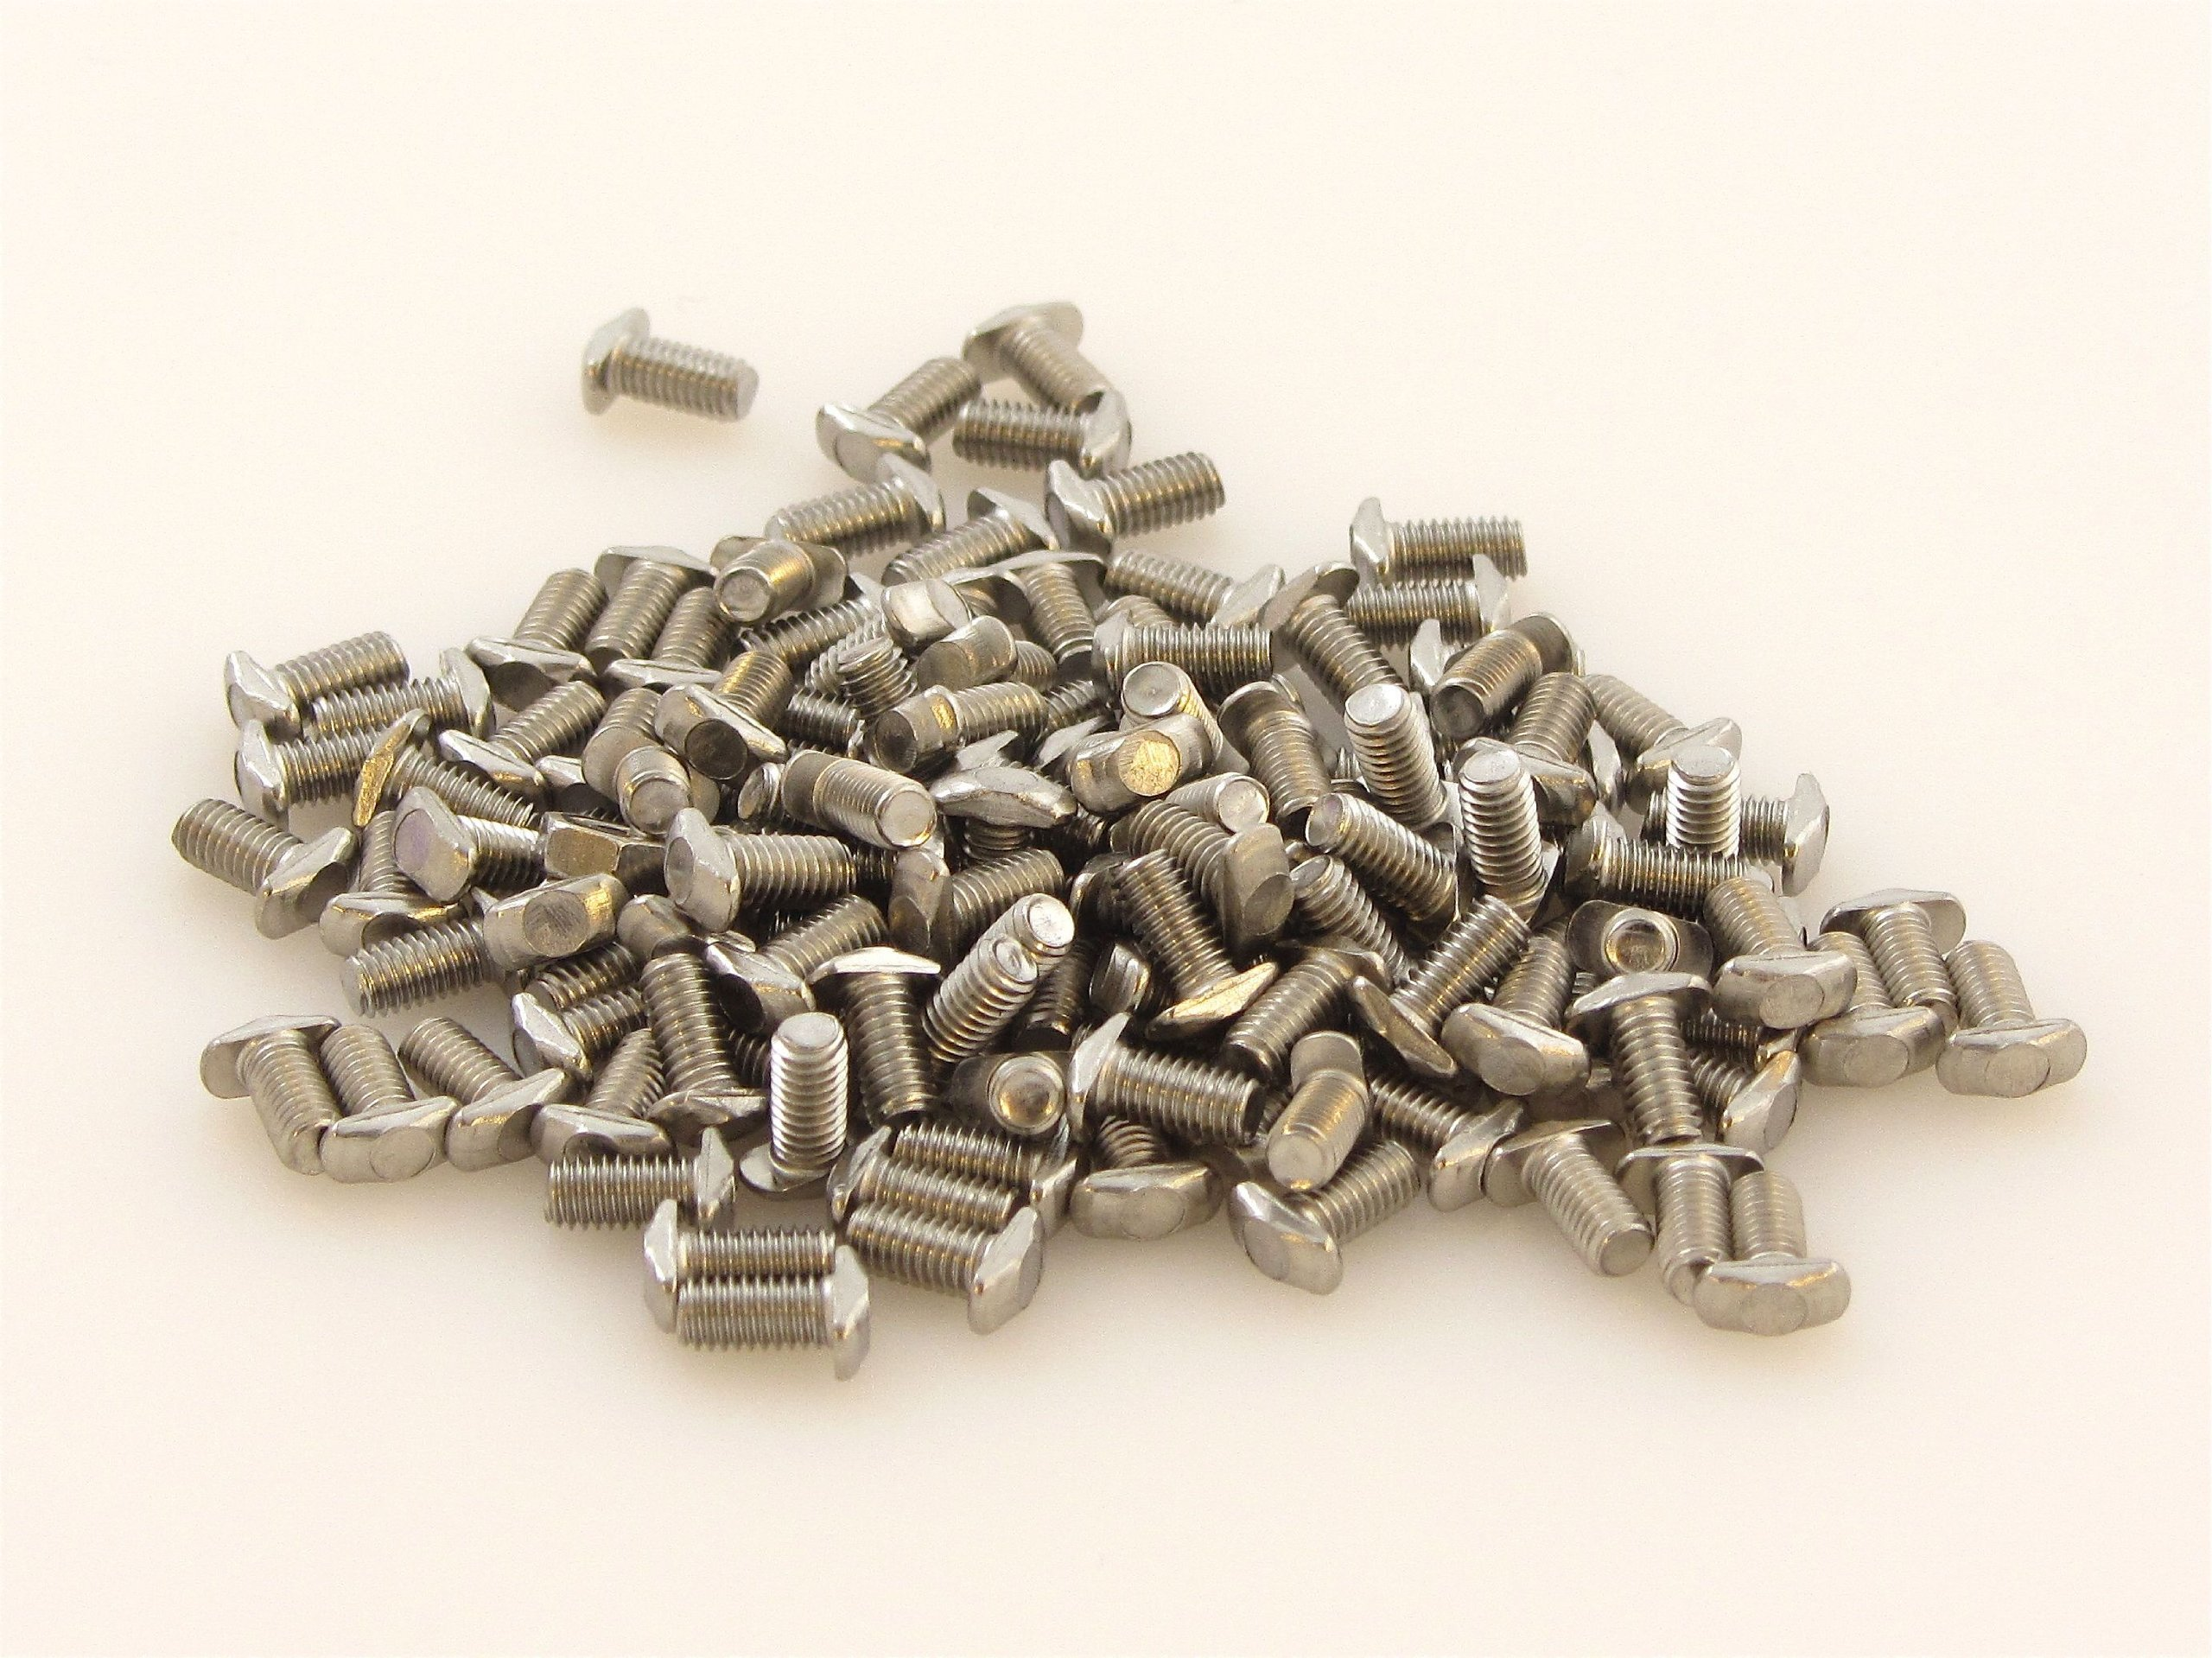 MakerBeam M3 bolts with wing type head, 6mm (pack of 100) designed for MakerBeam (10x10mm in diameter).